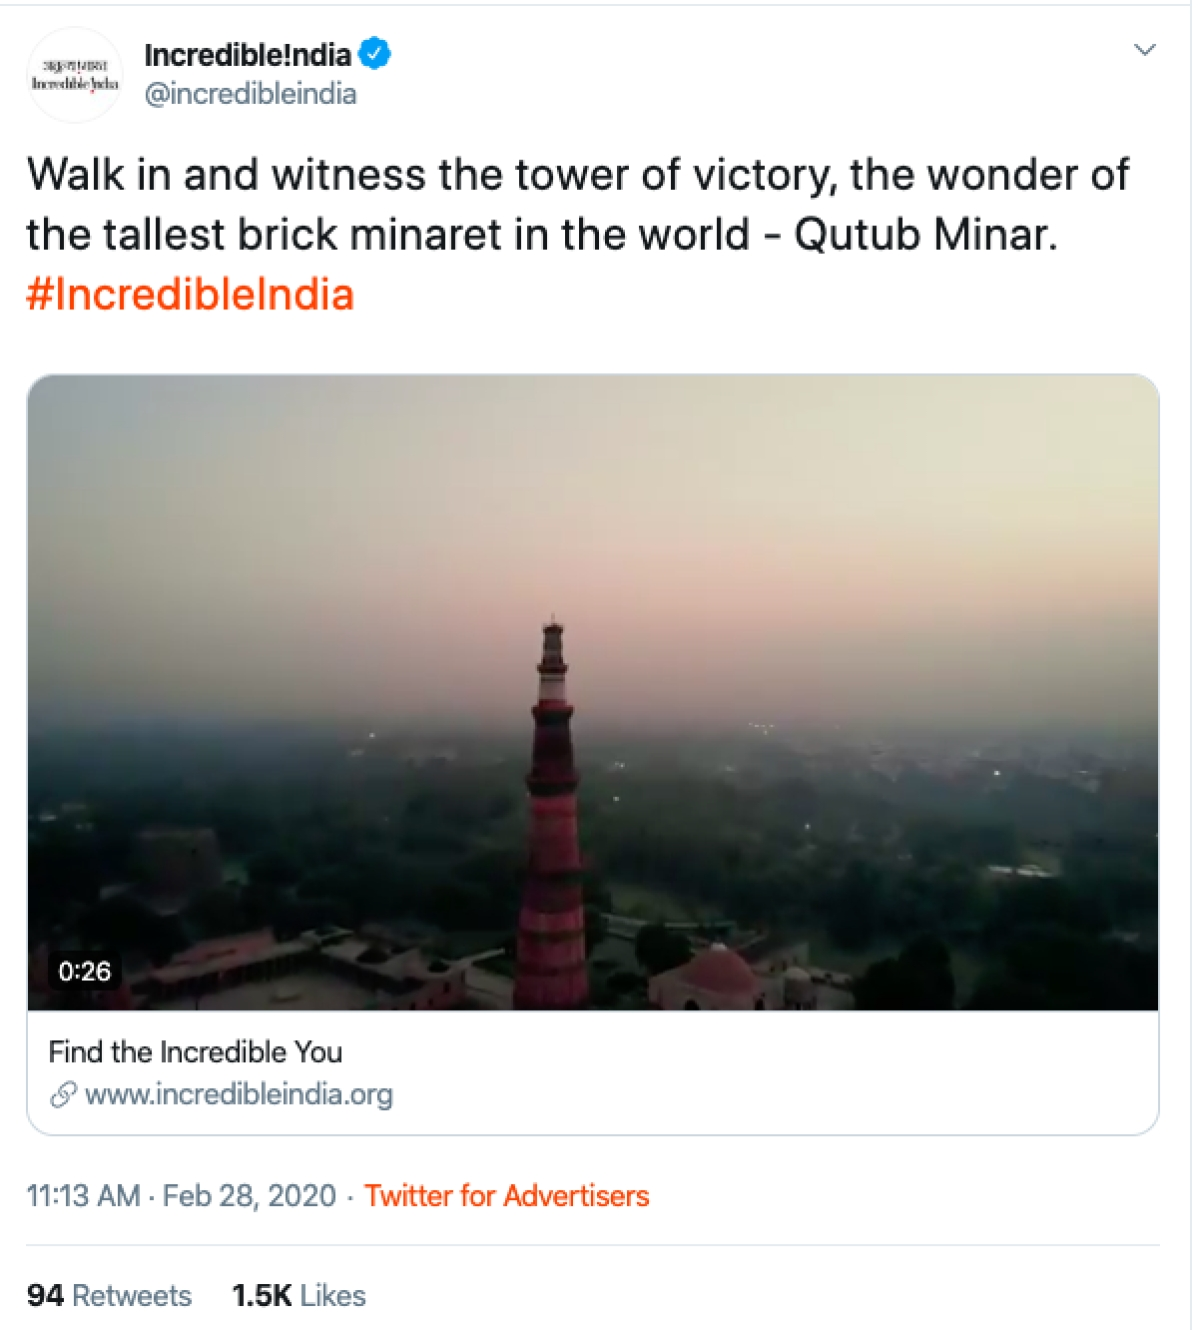 """History Lessons for Incredible India: The True Meaning of the """"Tower of Victory"""" at Qutub Minar"""